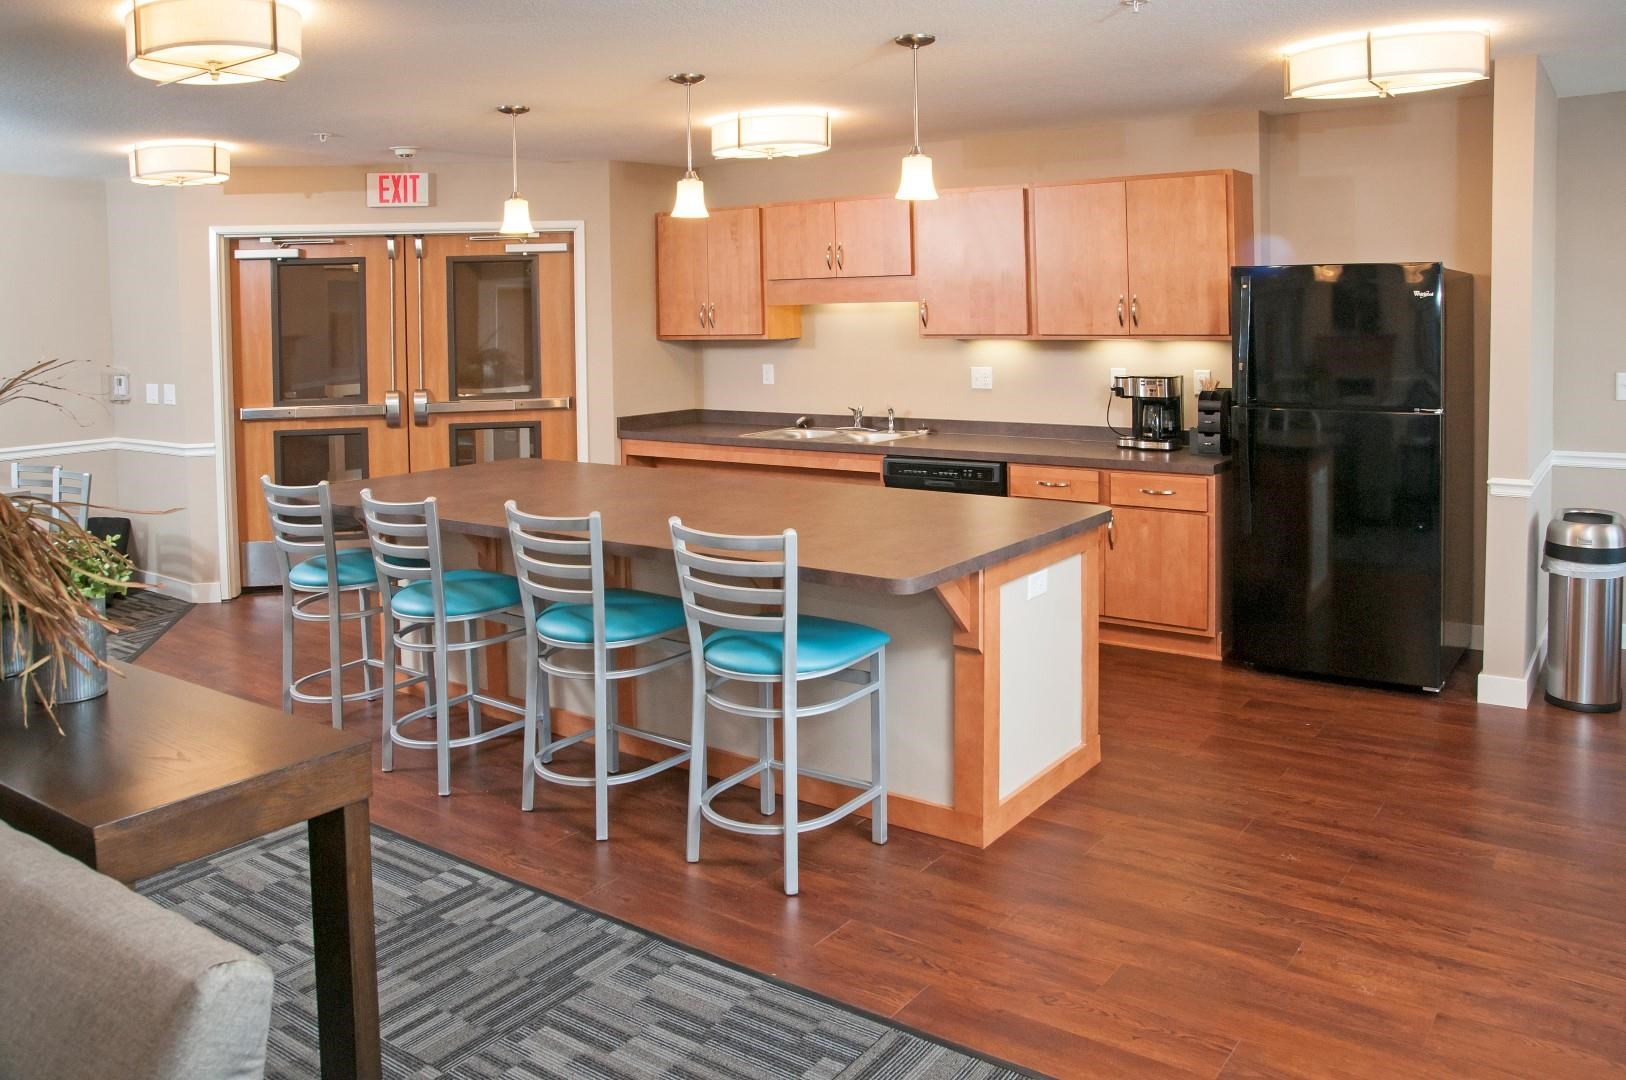 Kitchen with Full Sized Refrigerator, Dishwasher and Sink in Community Room of Apartments in Carver, MN